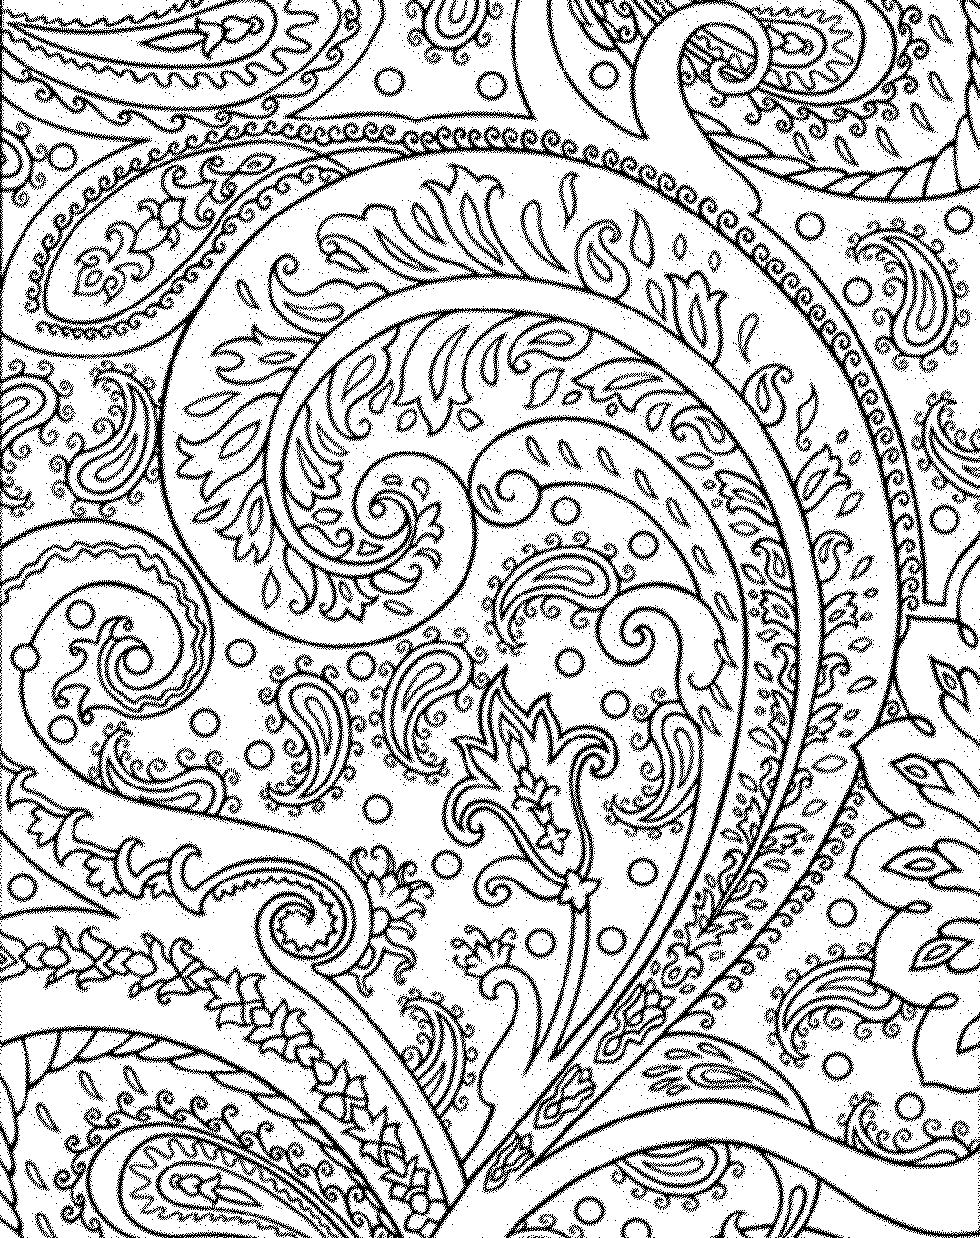 11 coloring pages for 11 stressful situations